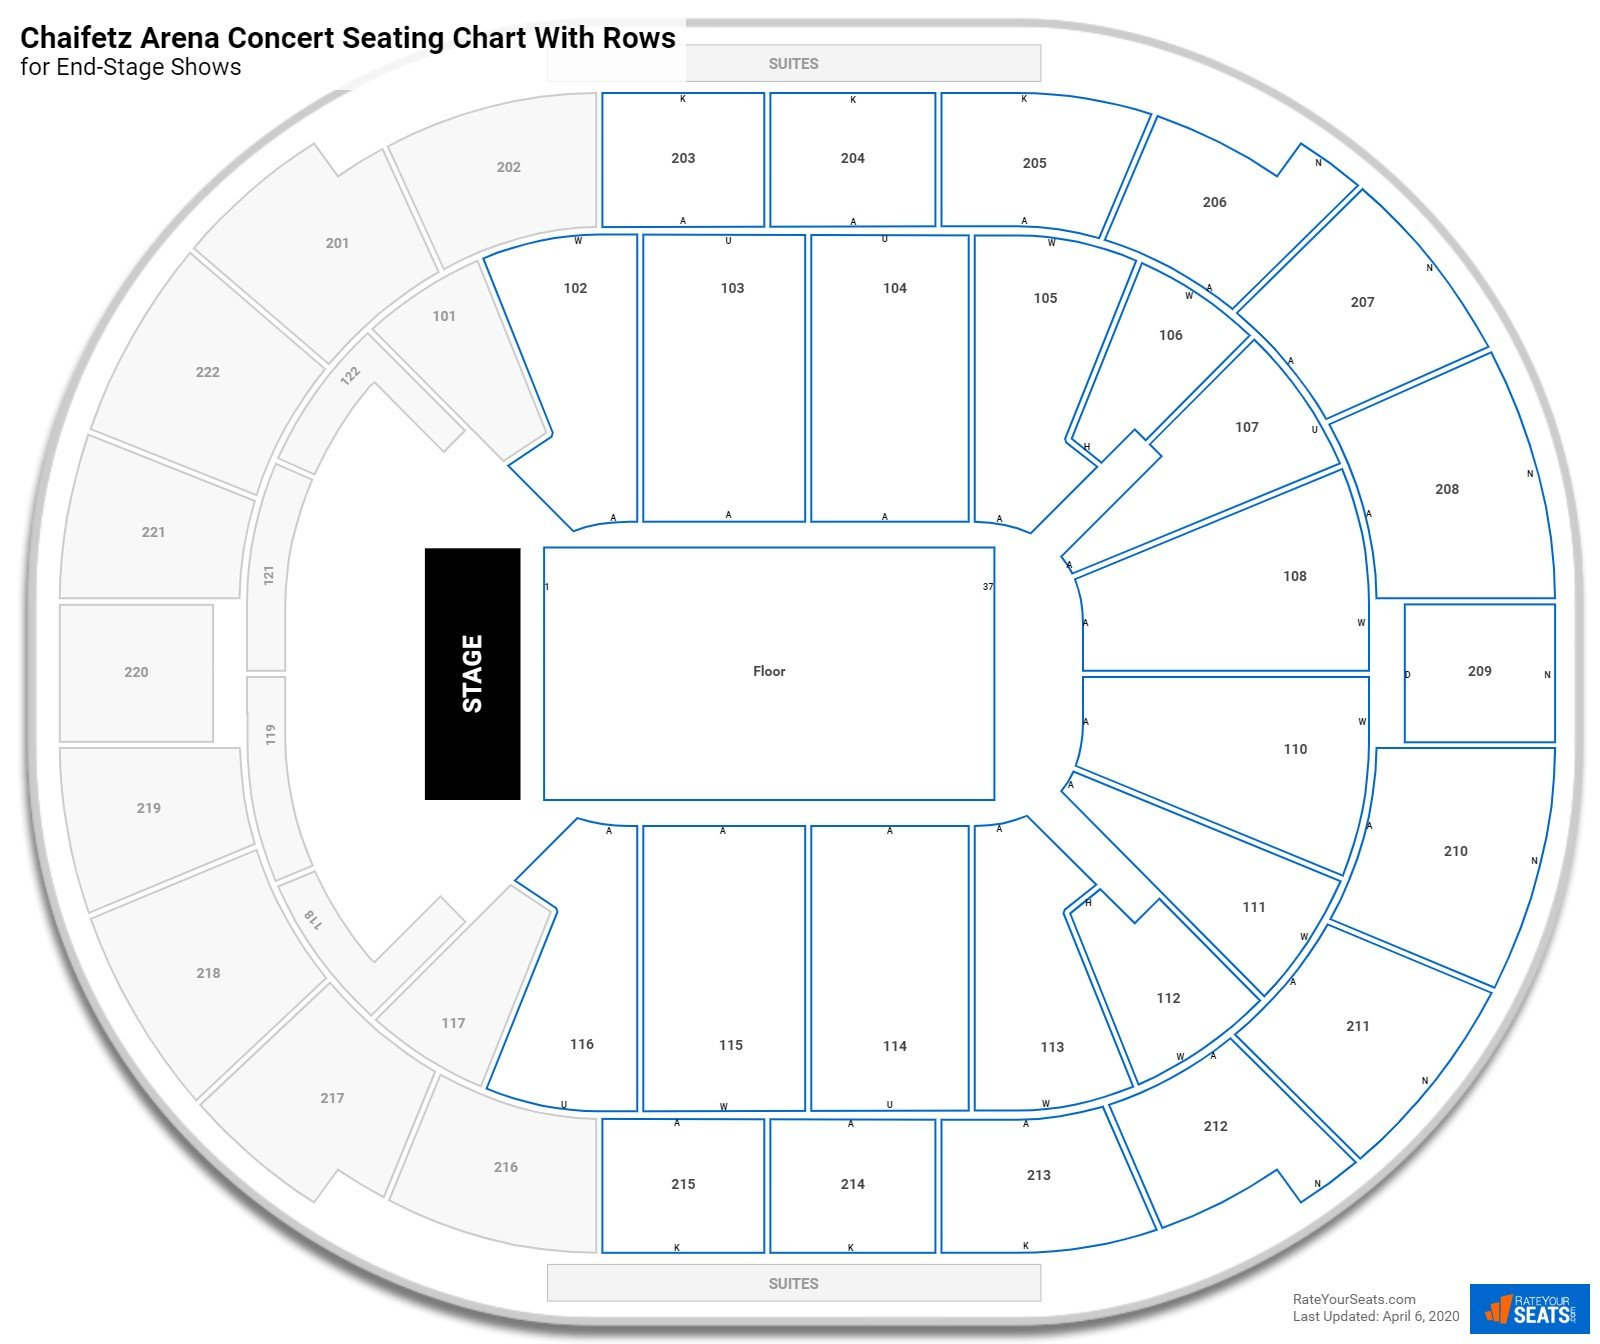 Chaifetz Arena seating chart with rows concert